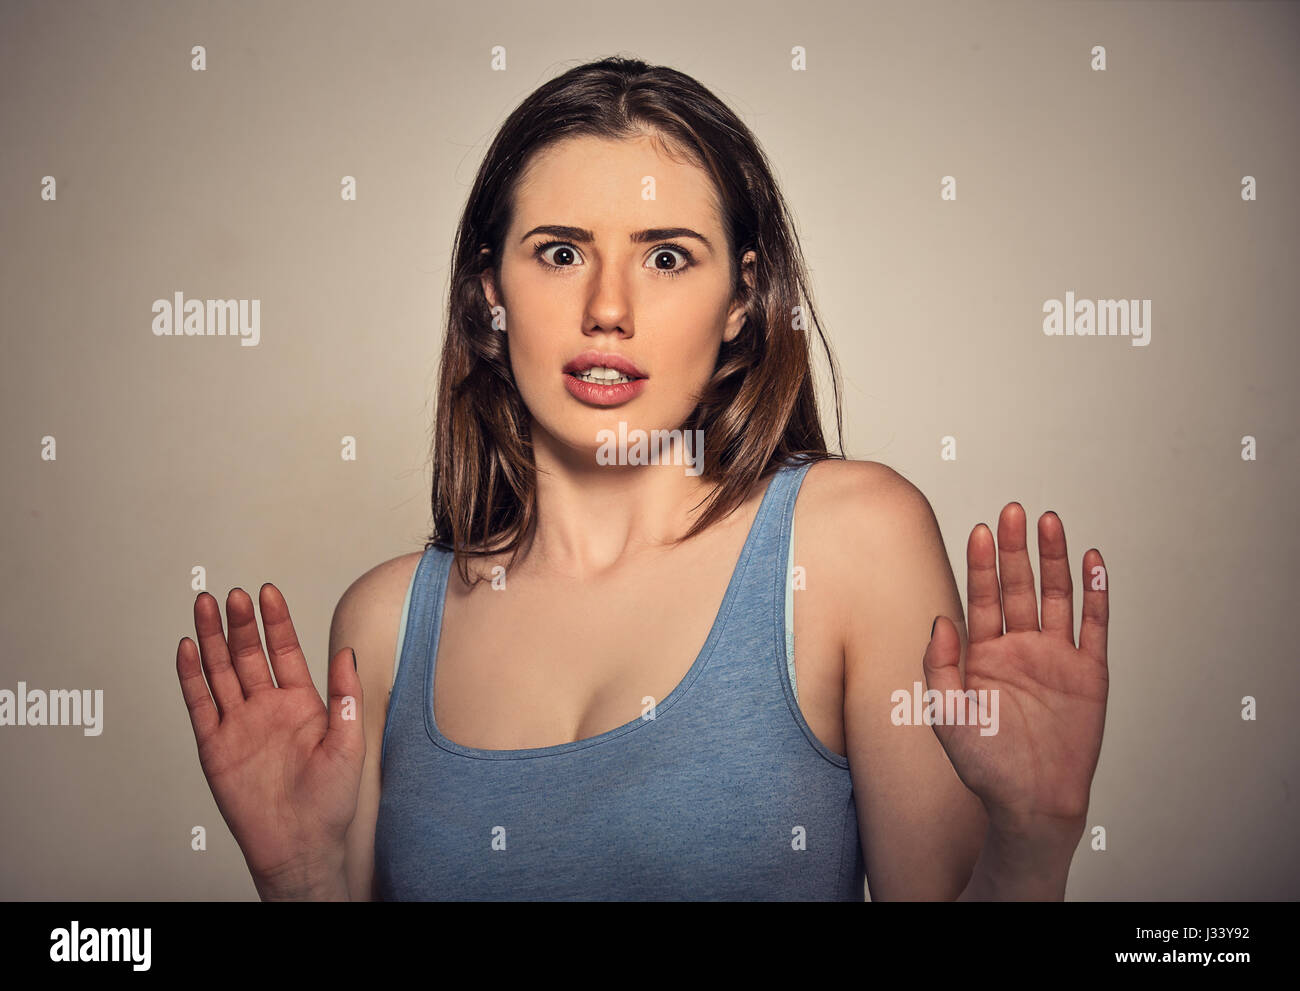 Concerned scared woman dodging something arms raised trying to avoid unpleasant situation isolated on gray wall - Stock Image